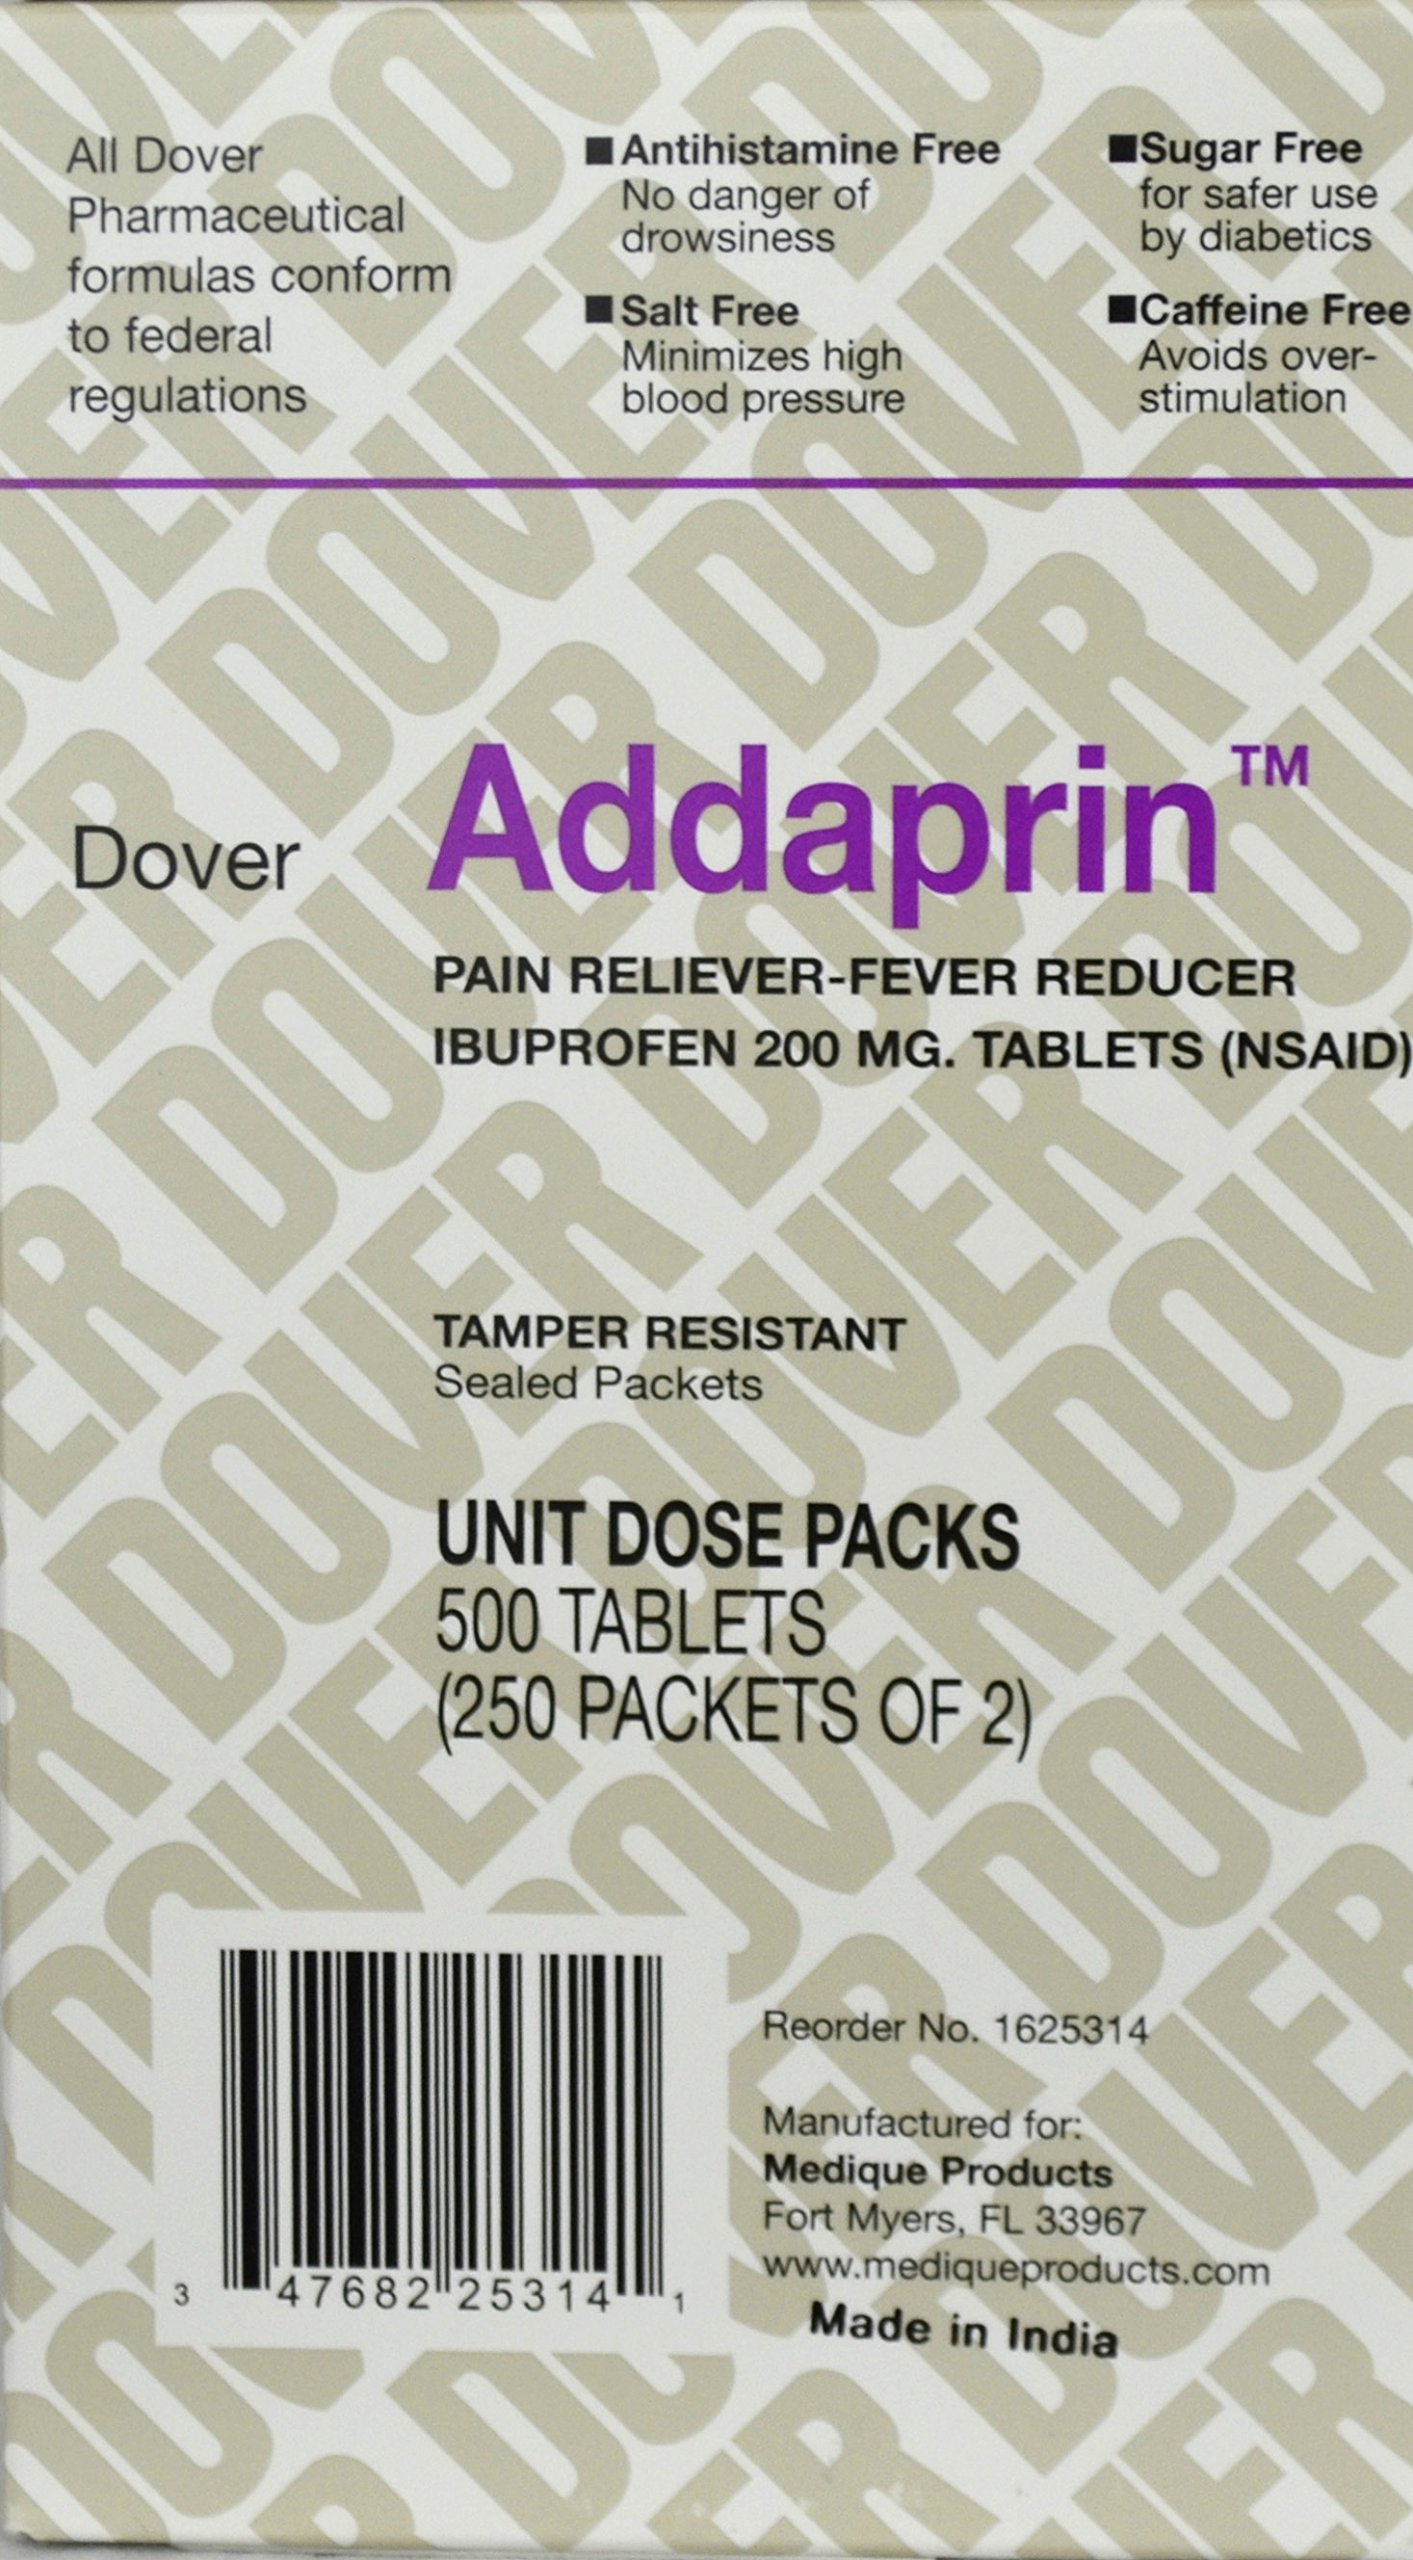 Addaprin Pain Relief Tablets Ibuprofen 200 mg. (500 Tablats /Box) 1 Case (6 Boxes) by Medique - MS65050 by Medique